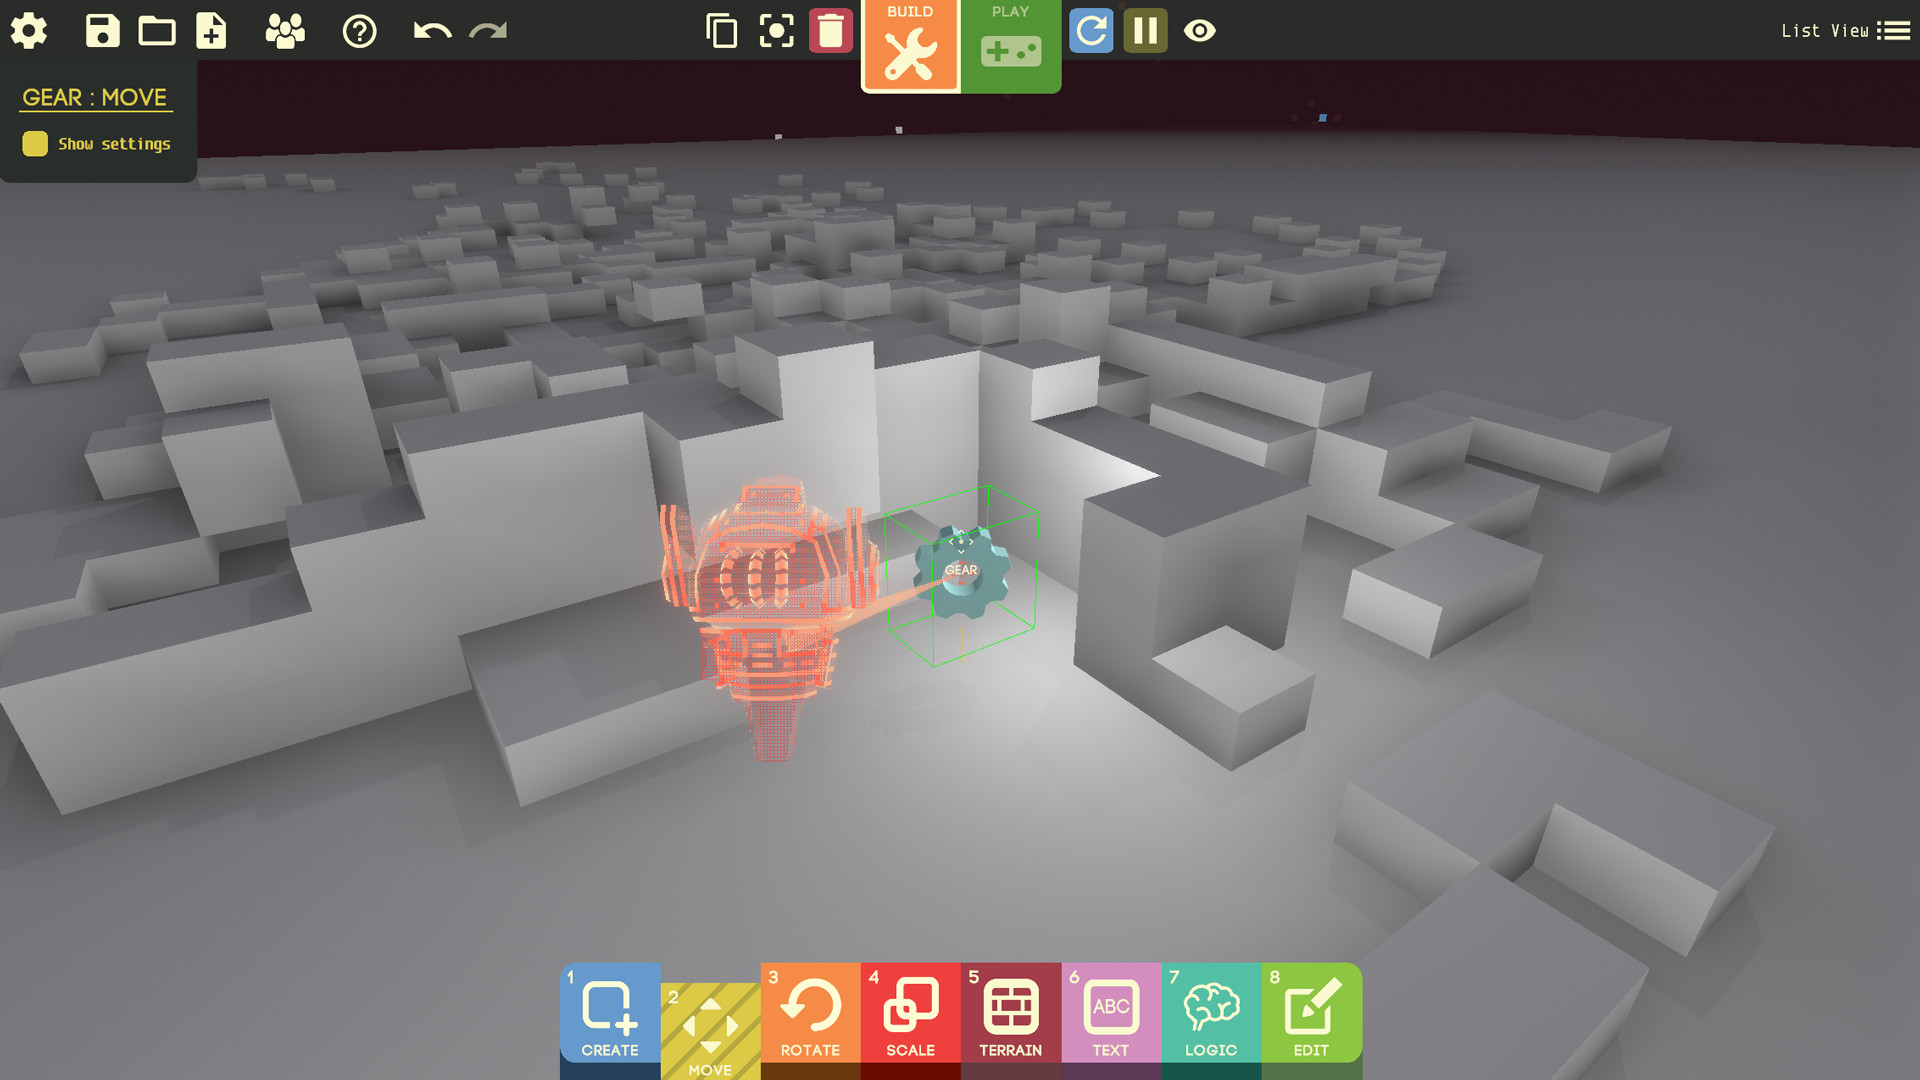 Google 'Game Builder' lets anyone create 3D games - 9to5Google